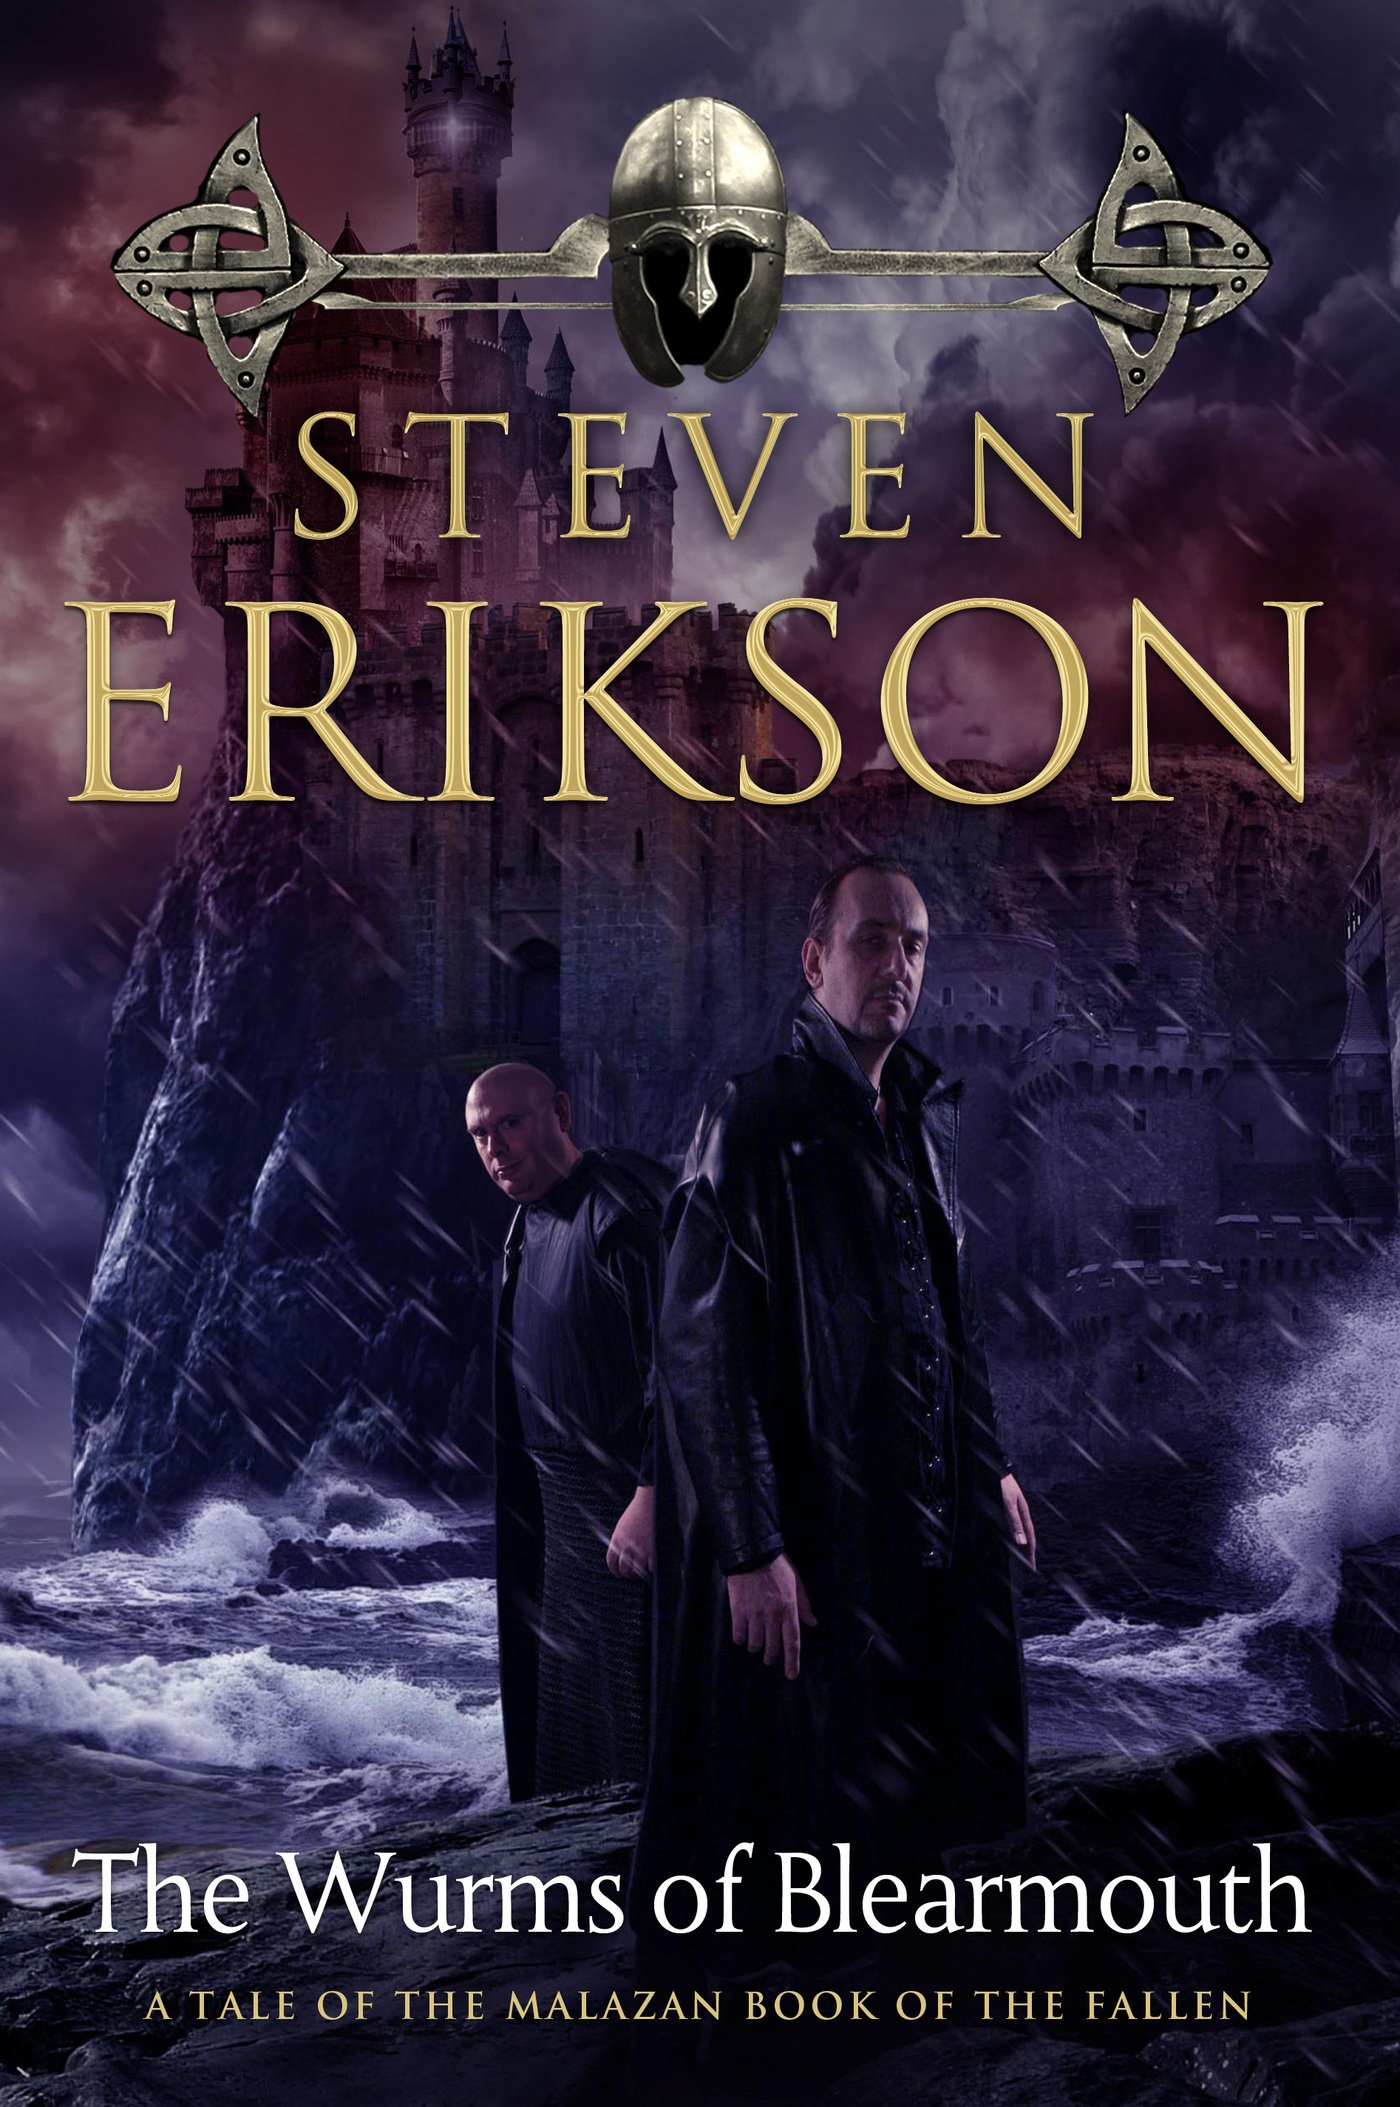 The Wurms Of Blearmouth: A Malazan Tale Of Bauchelain And Korbal Broach (malazan  Book Of The Fallen): Steven Erikson: 9780765376220: Amazon: Books